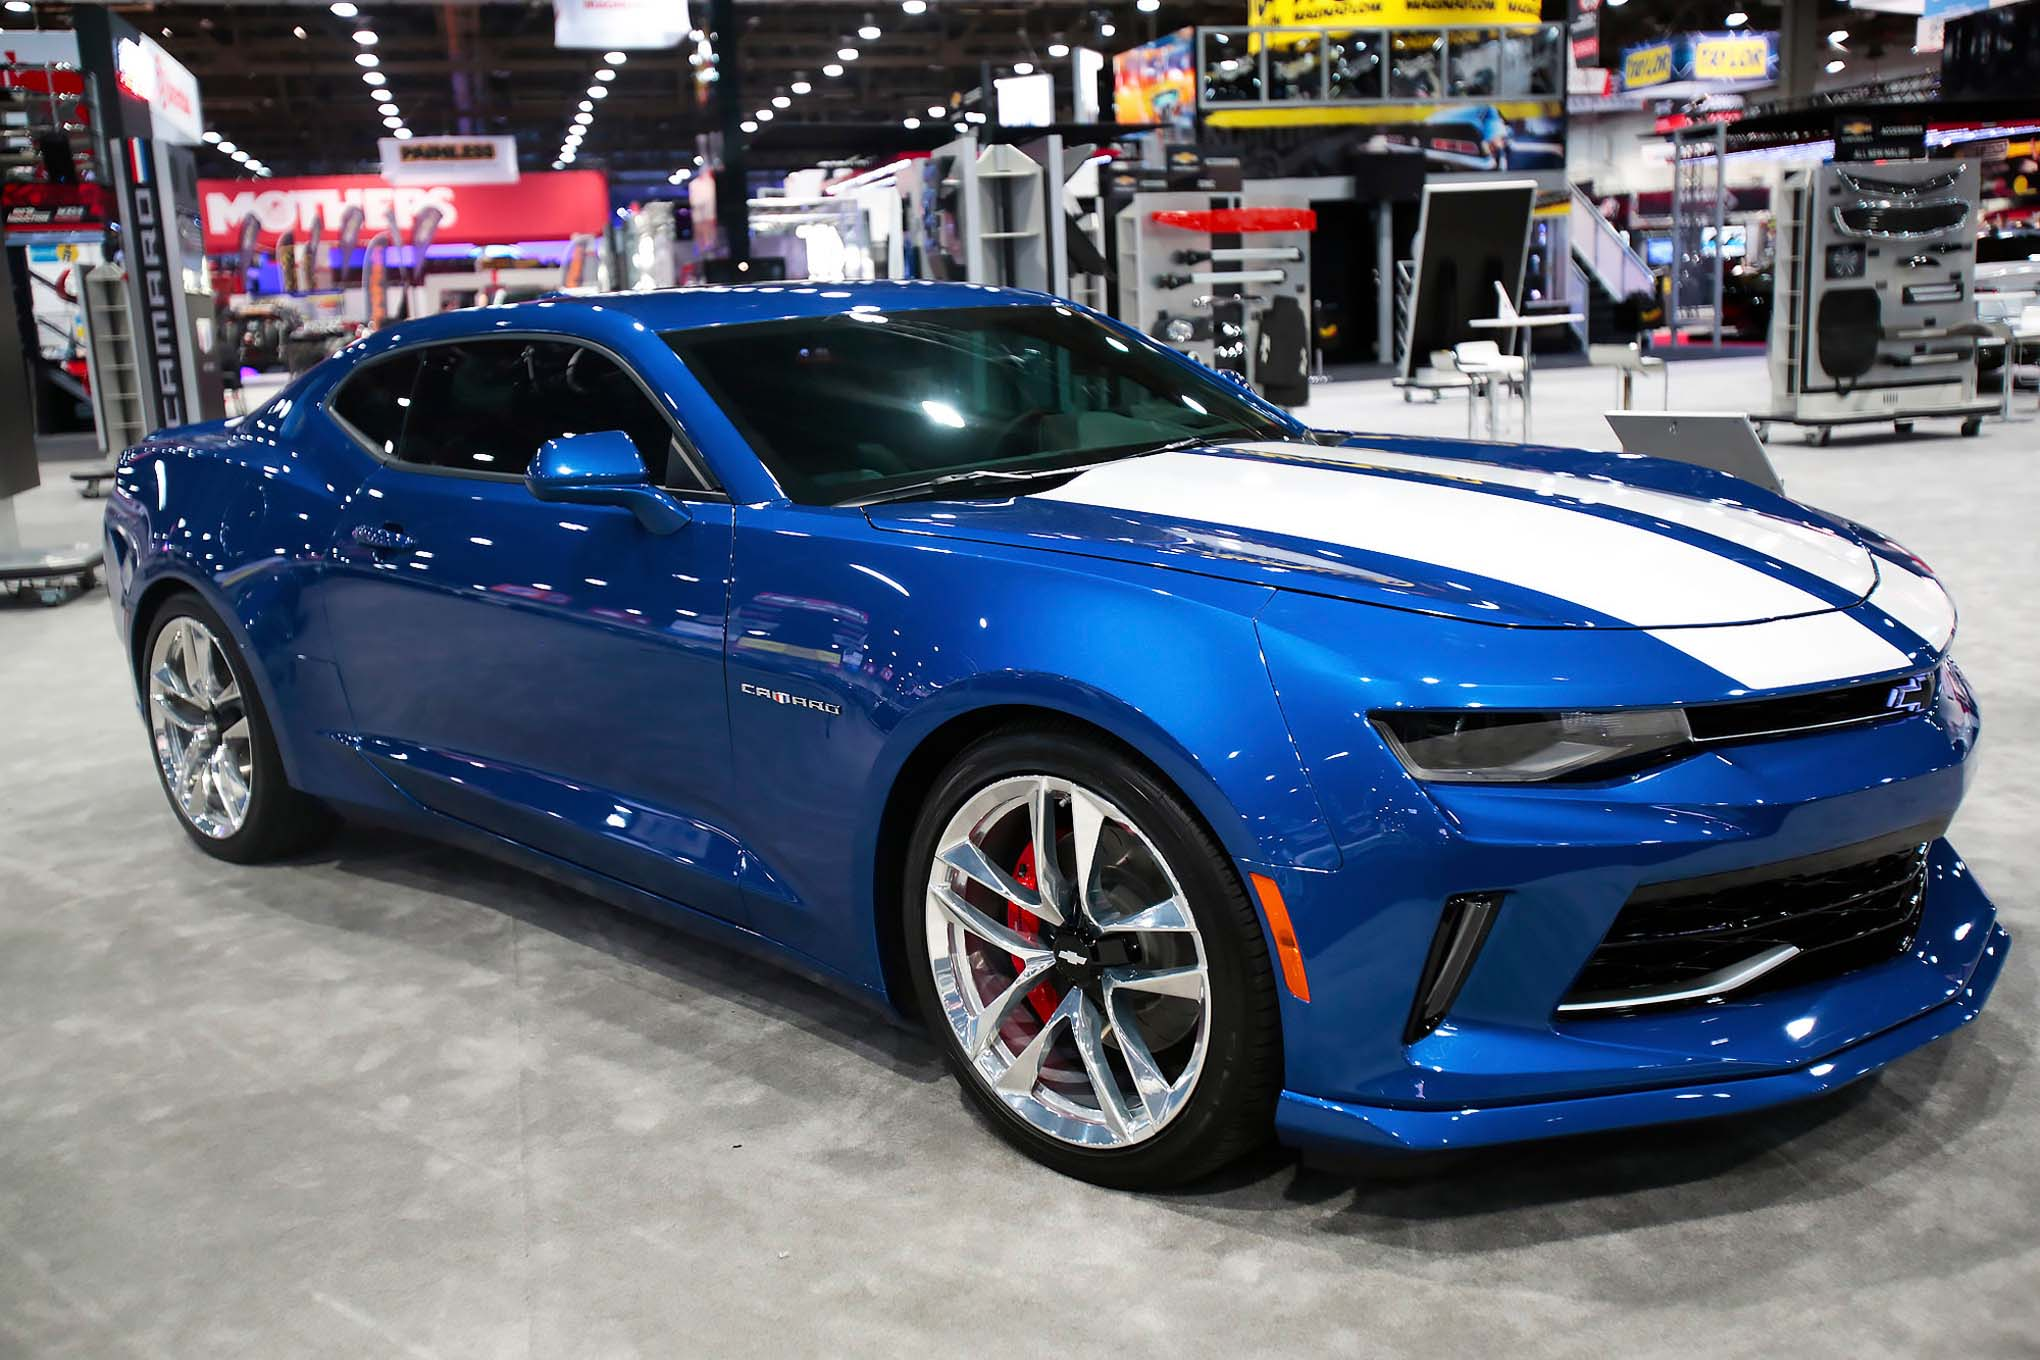 SEMA 2015 After Hours Photo Gallery 130 Lpr